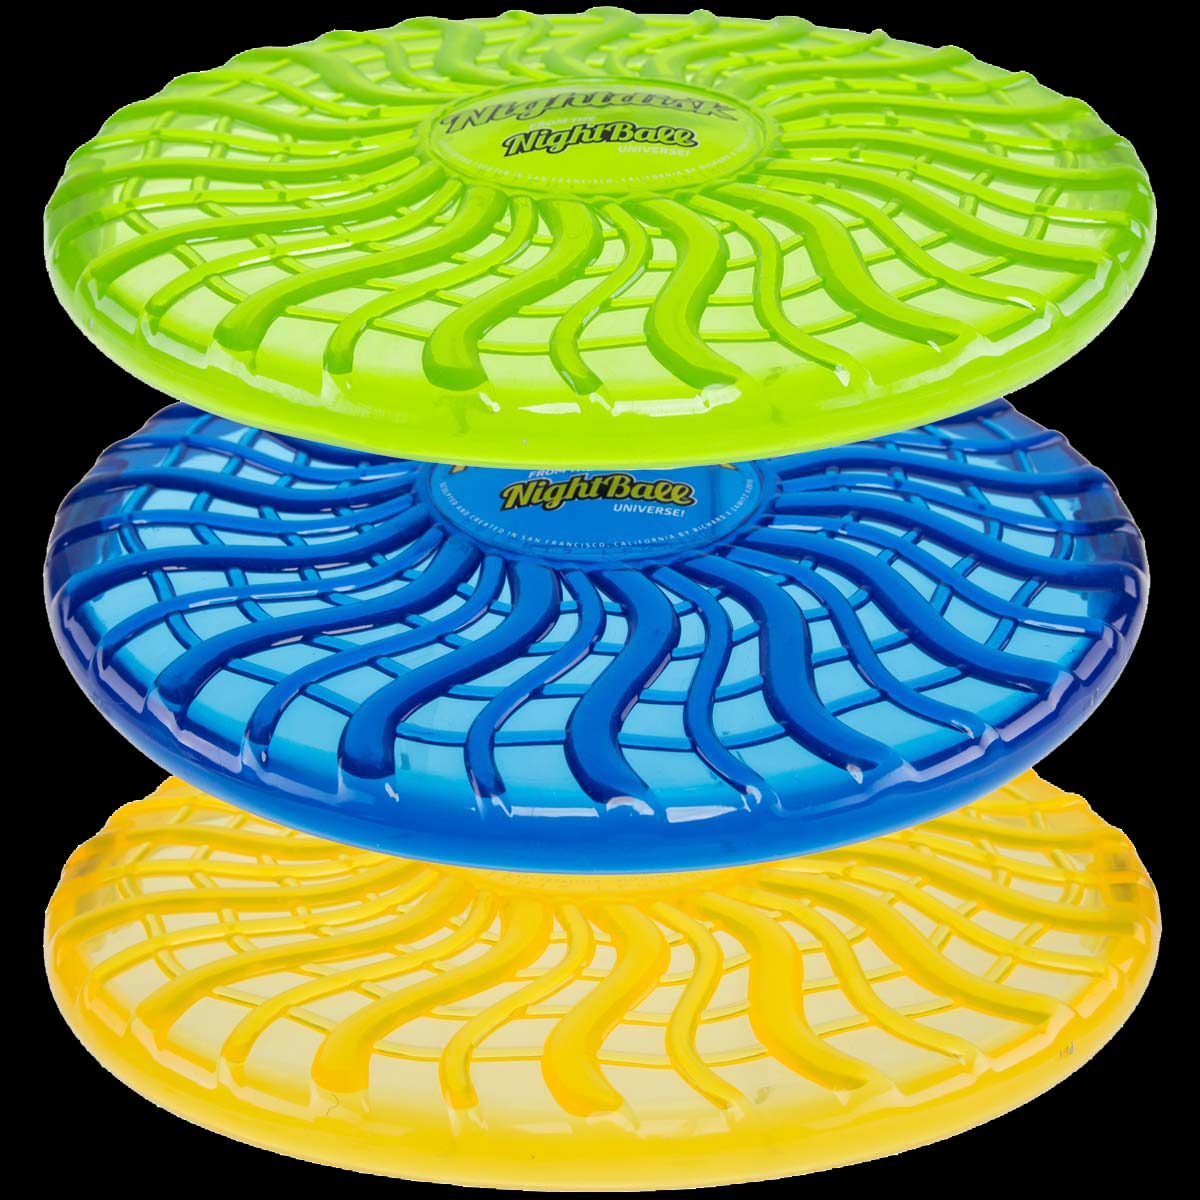 Tangle (Set of 3) Nightdisk LED Light Up Frisbee Discs Glow Yellow Blue & Green Soft For Kids and Dogs